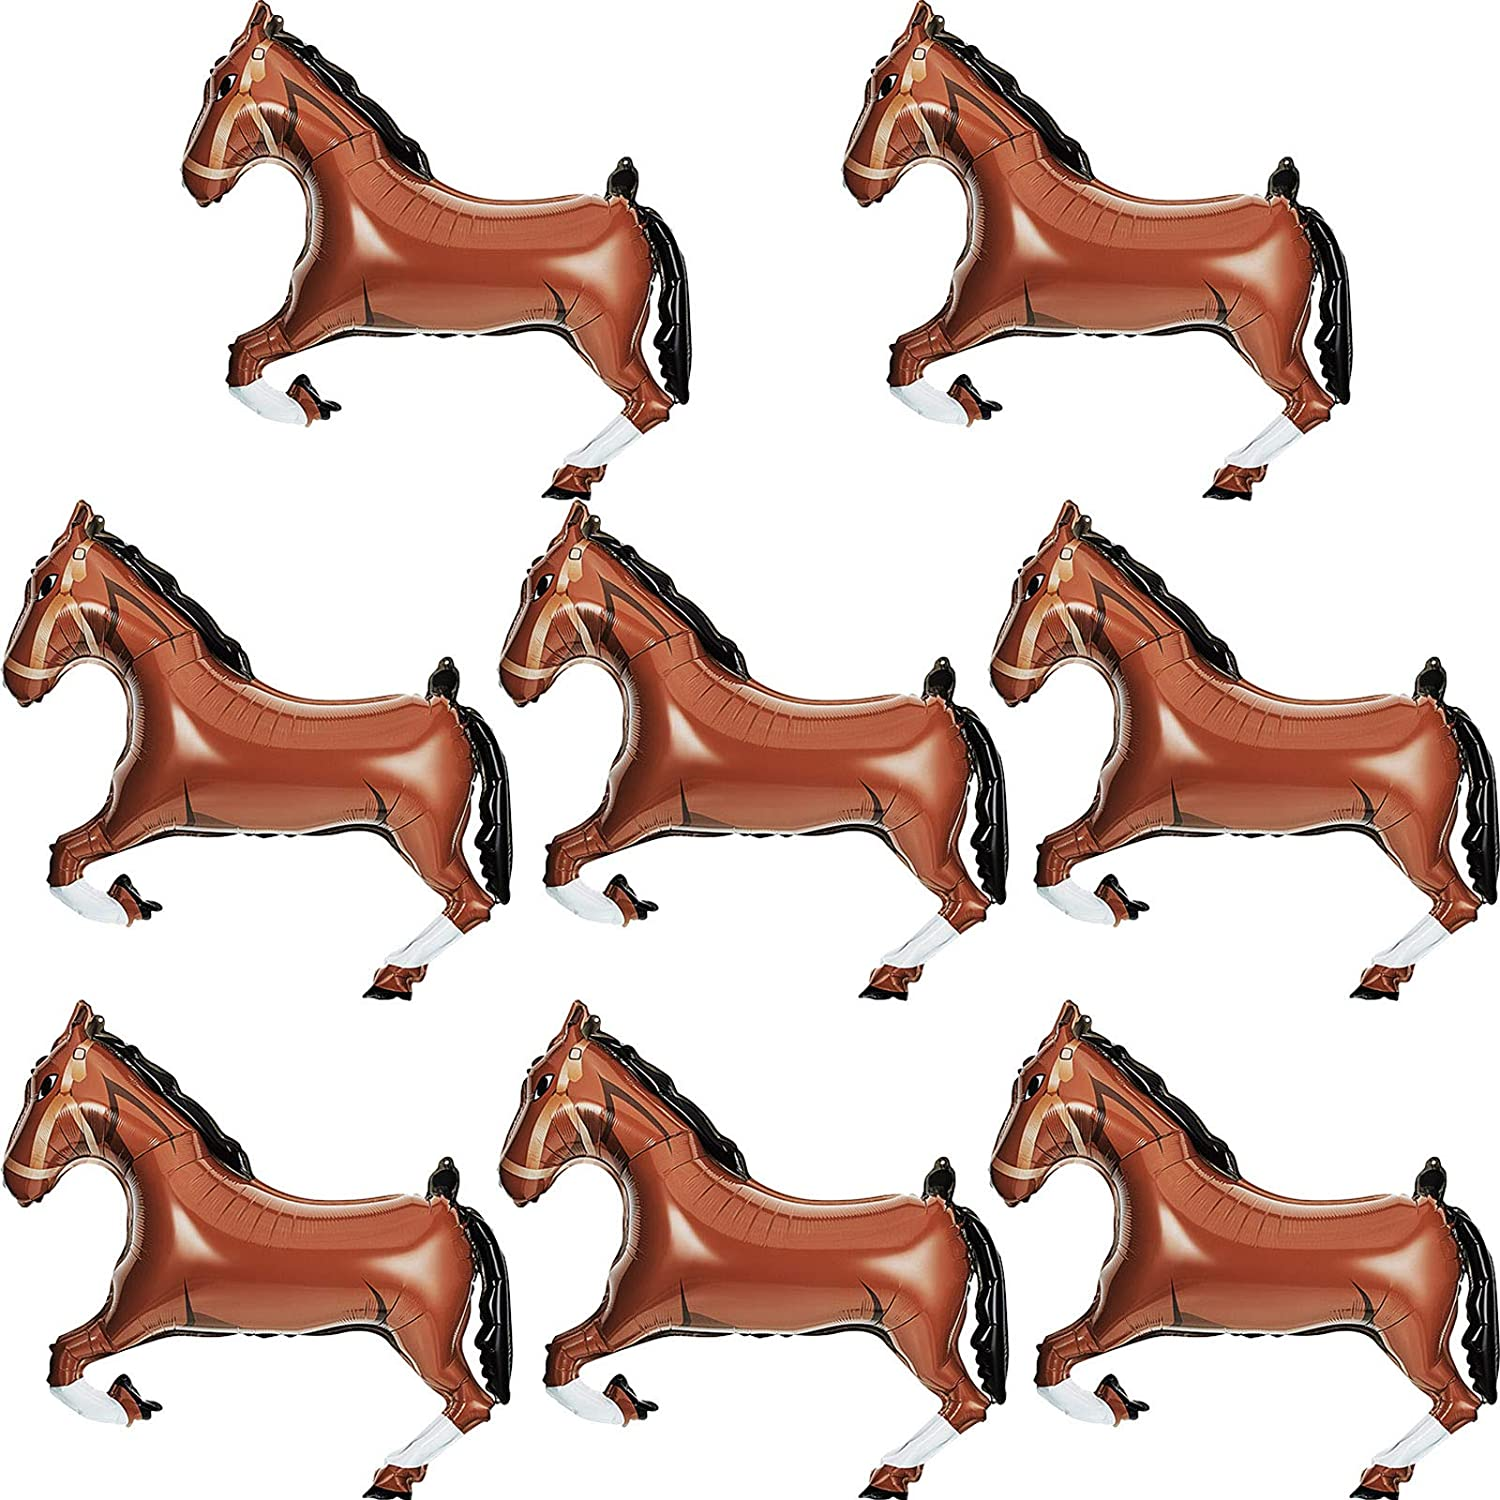 Galloping Horse Foil Balloon Melbourne Cup Race Day 101cm x 63cm